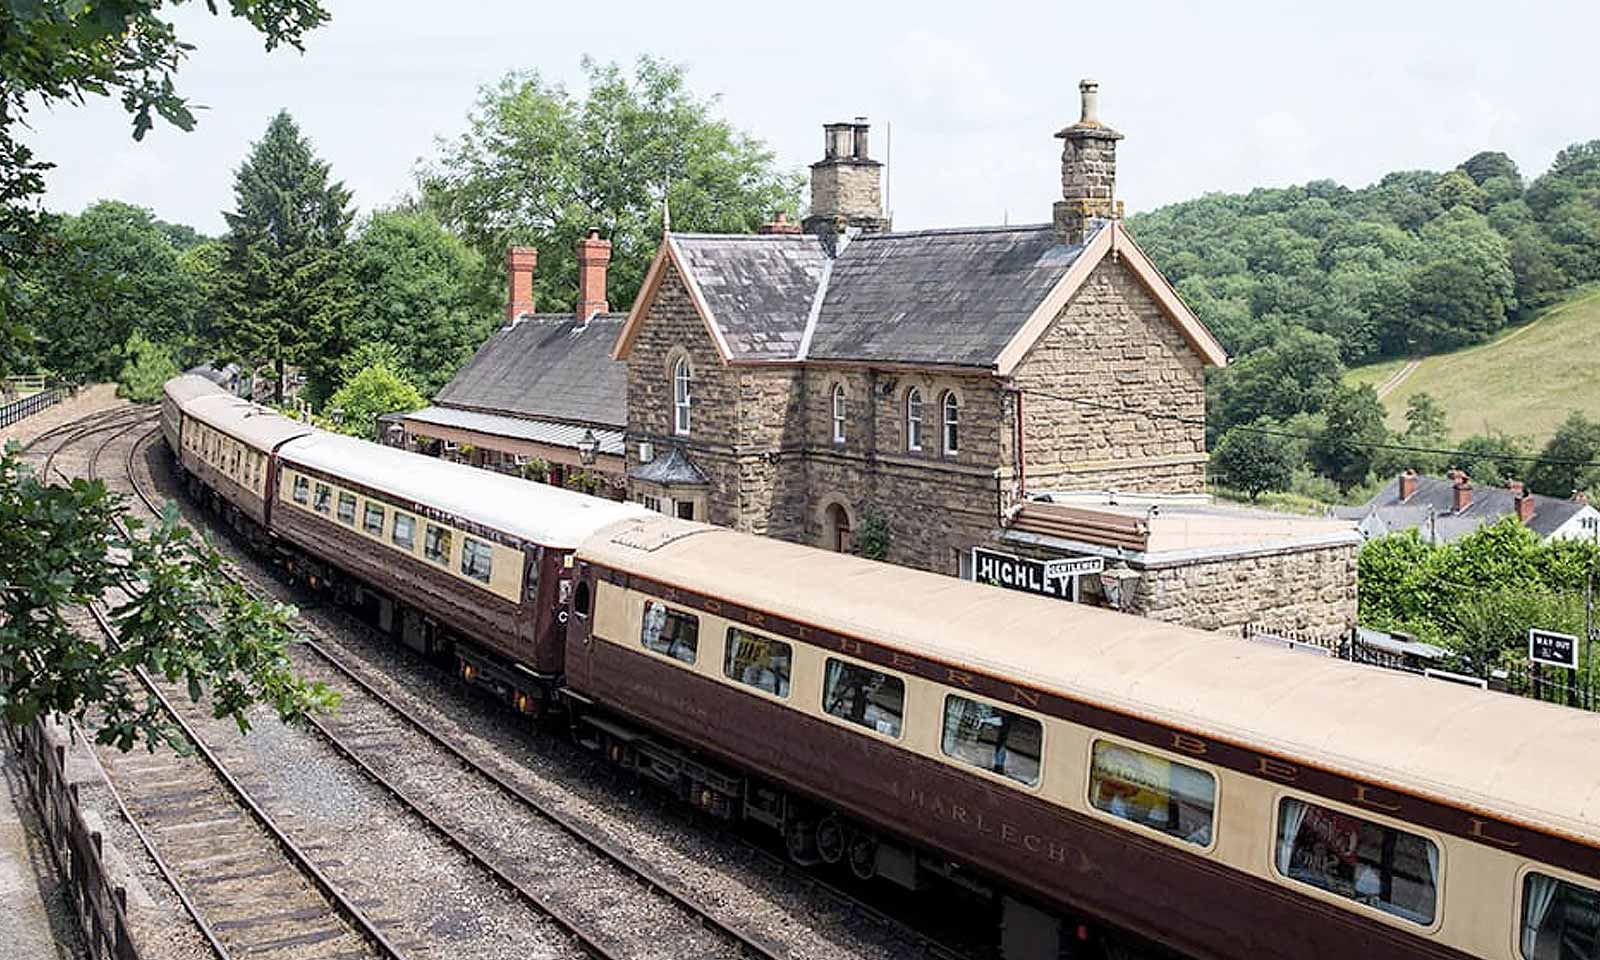 Northern Belle carriages